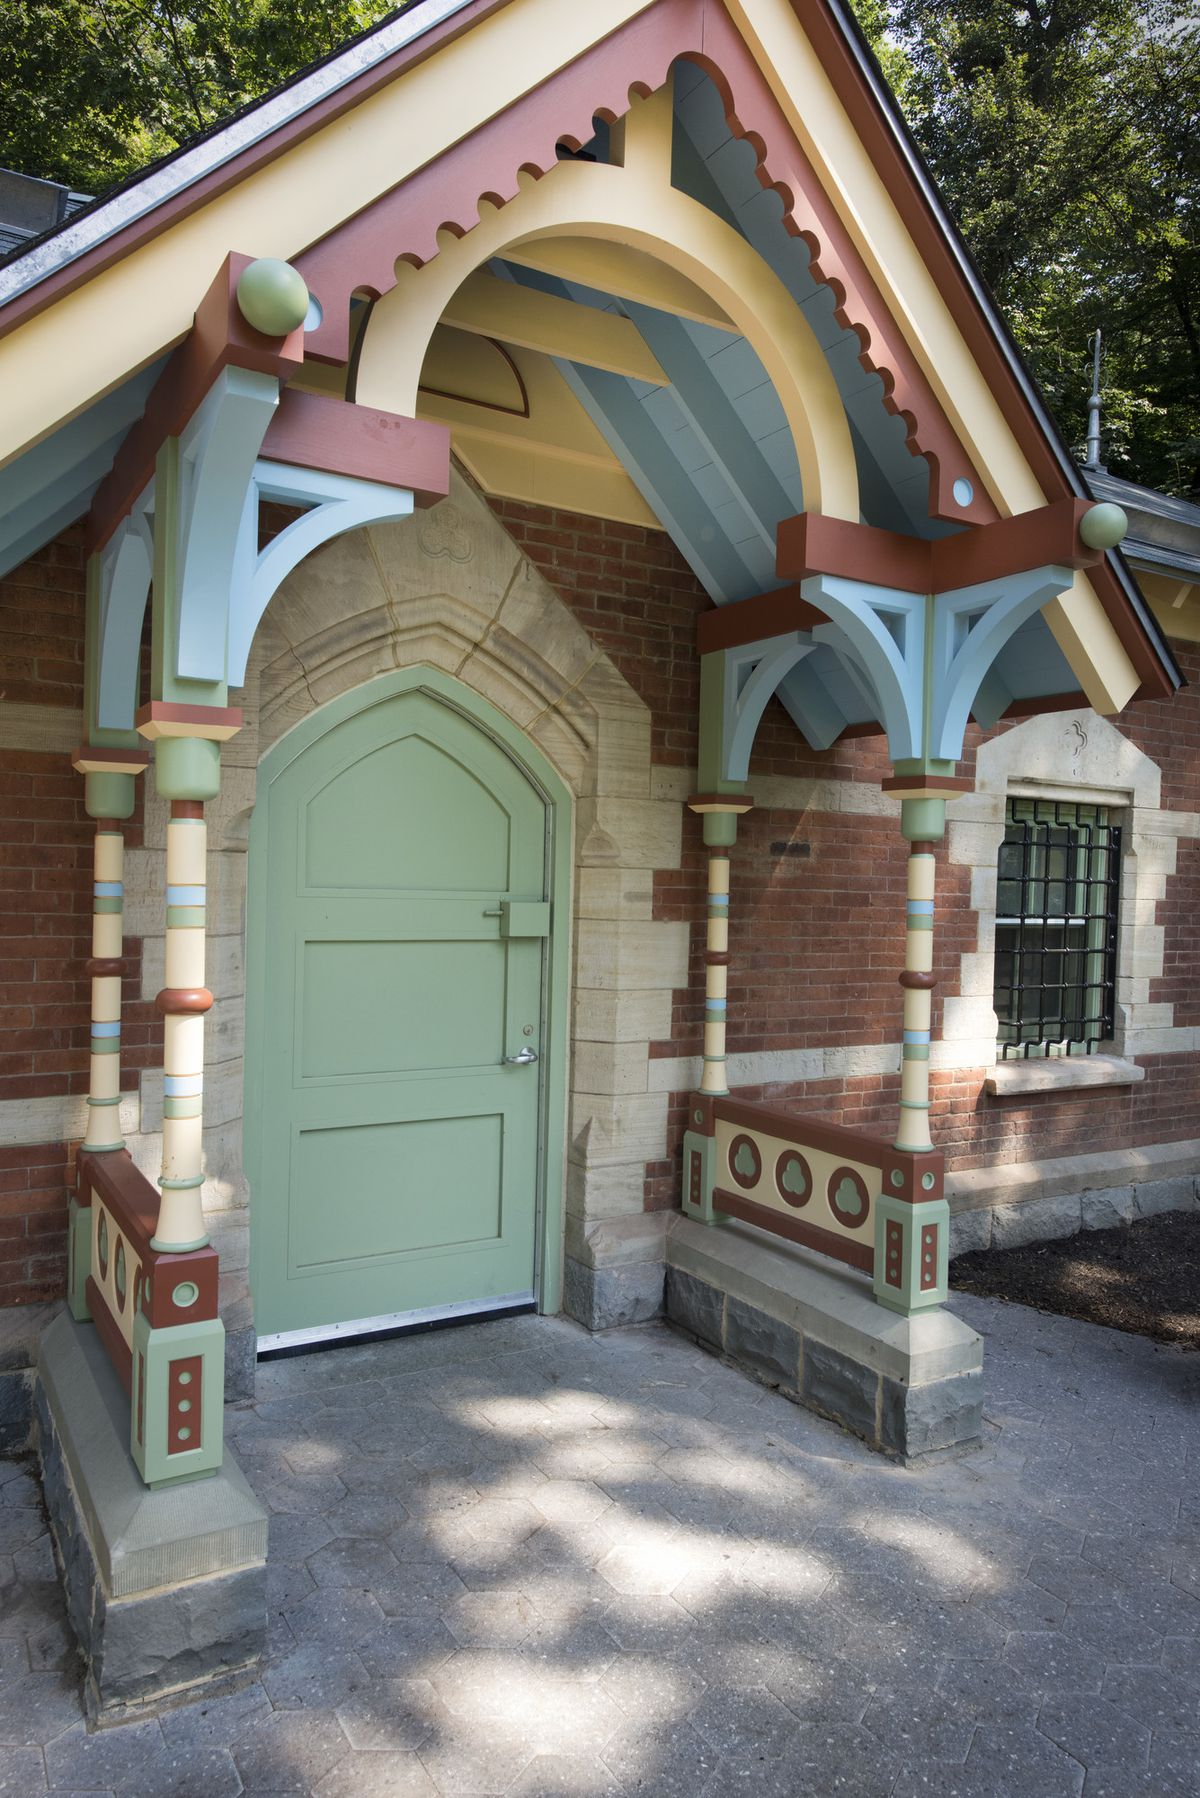 Prospect Park S 148 Year Old Wellhouse Is Transformed Into